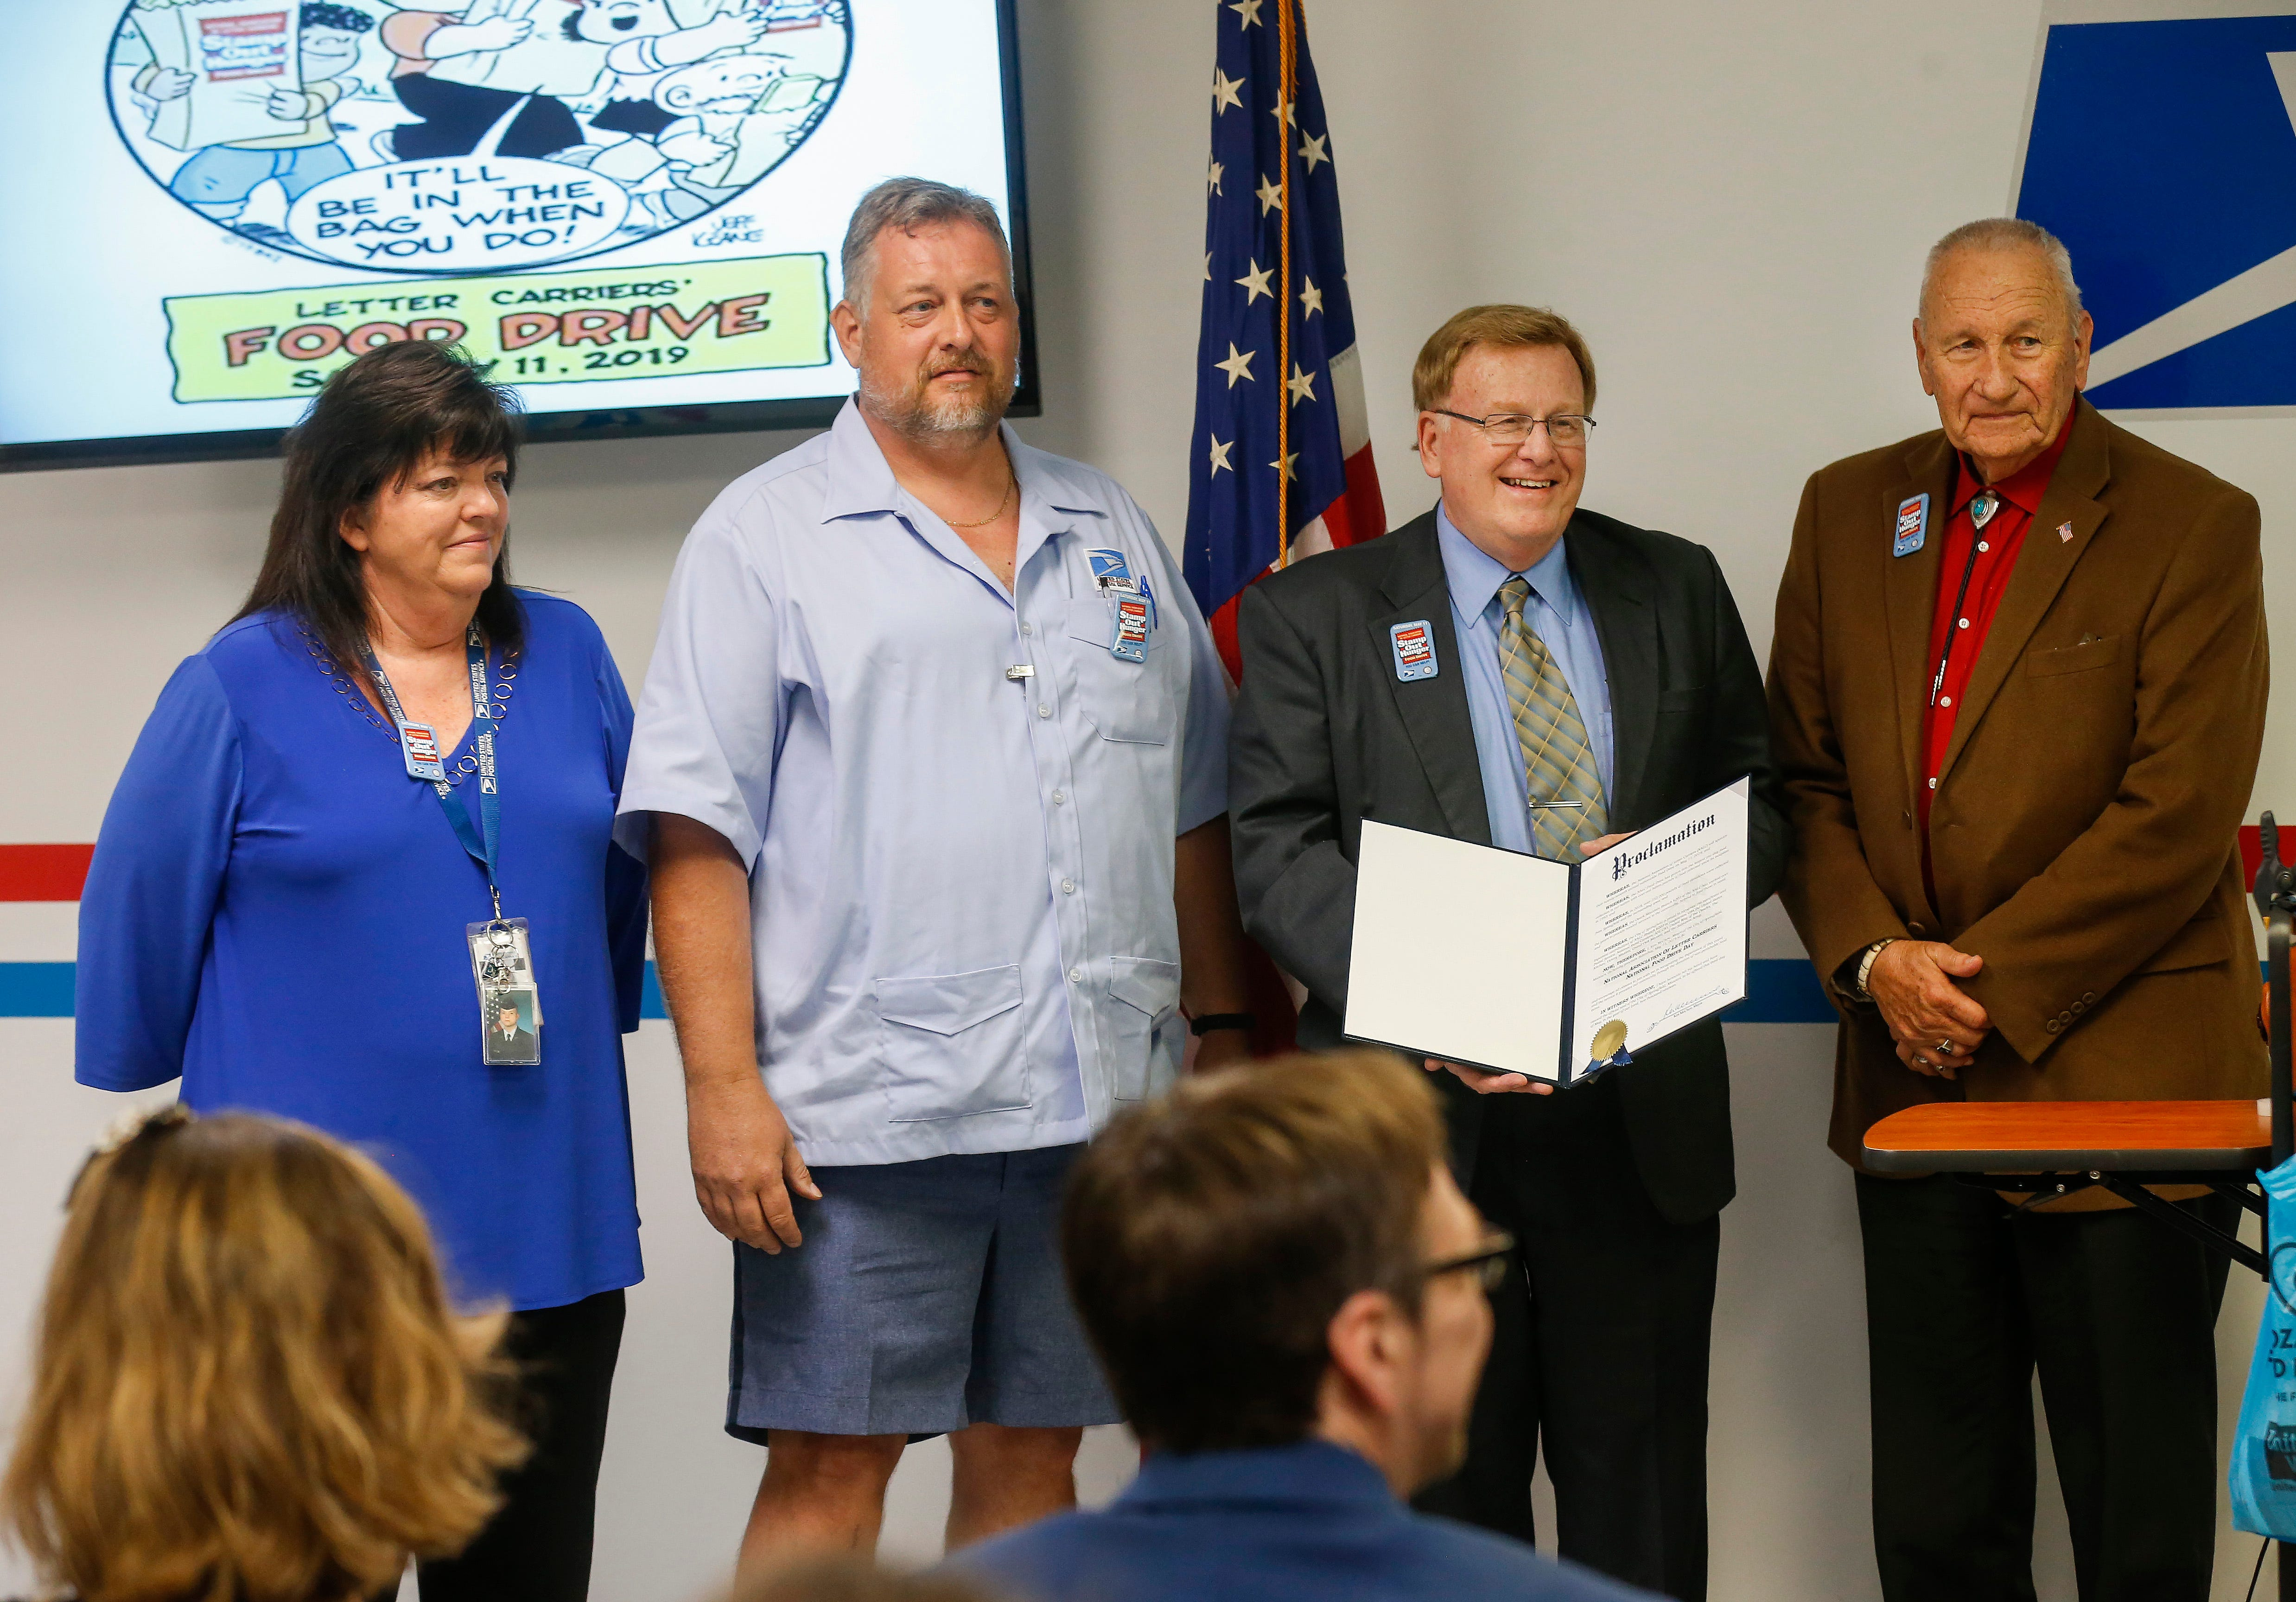 Springfield Mayor Ken McClure, center right, and Greene County Commissioner Harold Bengsch, right, present a proclamation to Terri Ryan, left, and Daryl Sexton during a press conference for the Stamp Out Hunger Food Drive on Thursday, May 9, 2019.